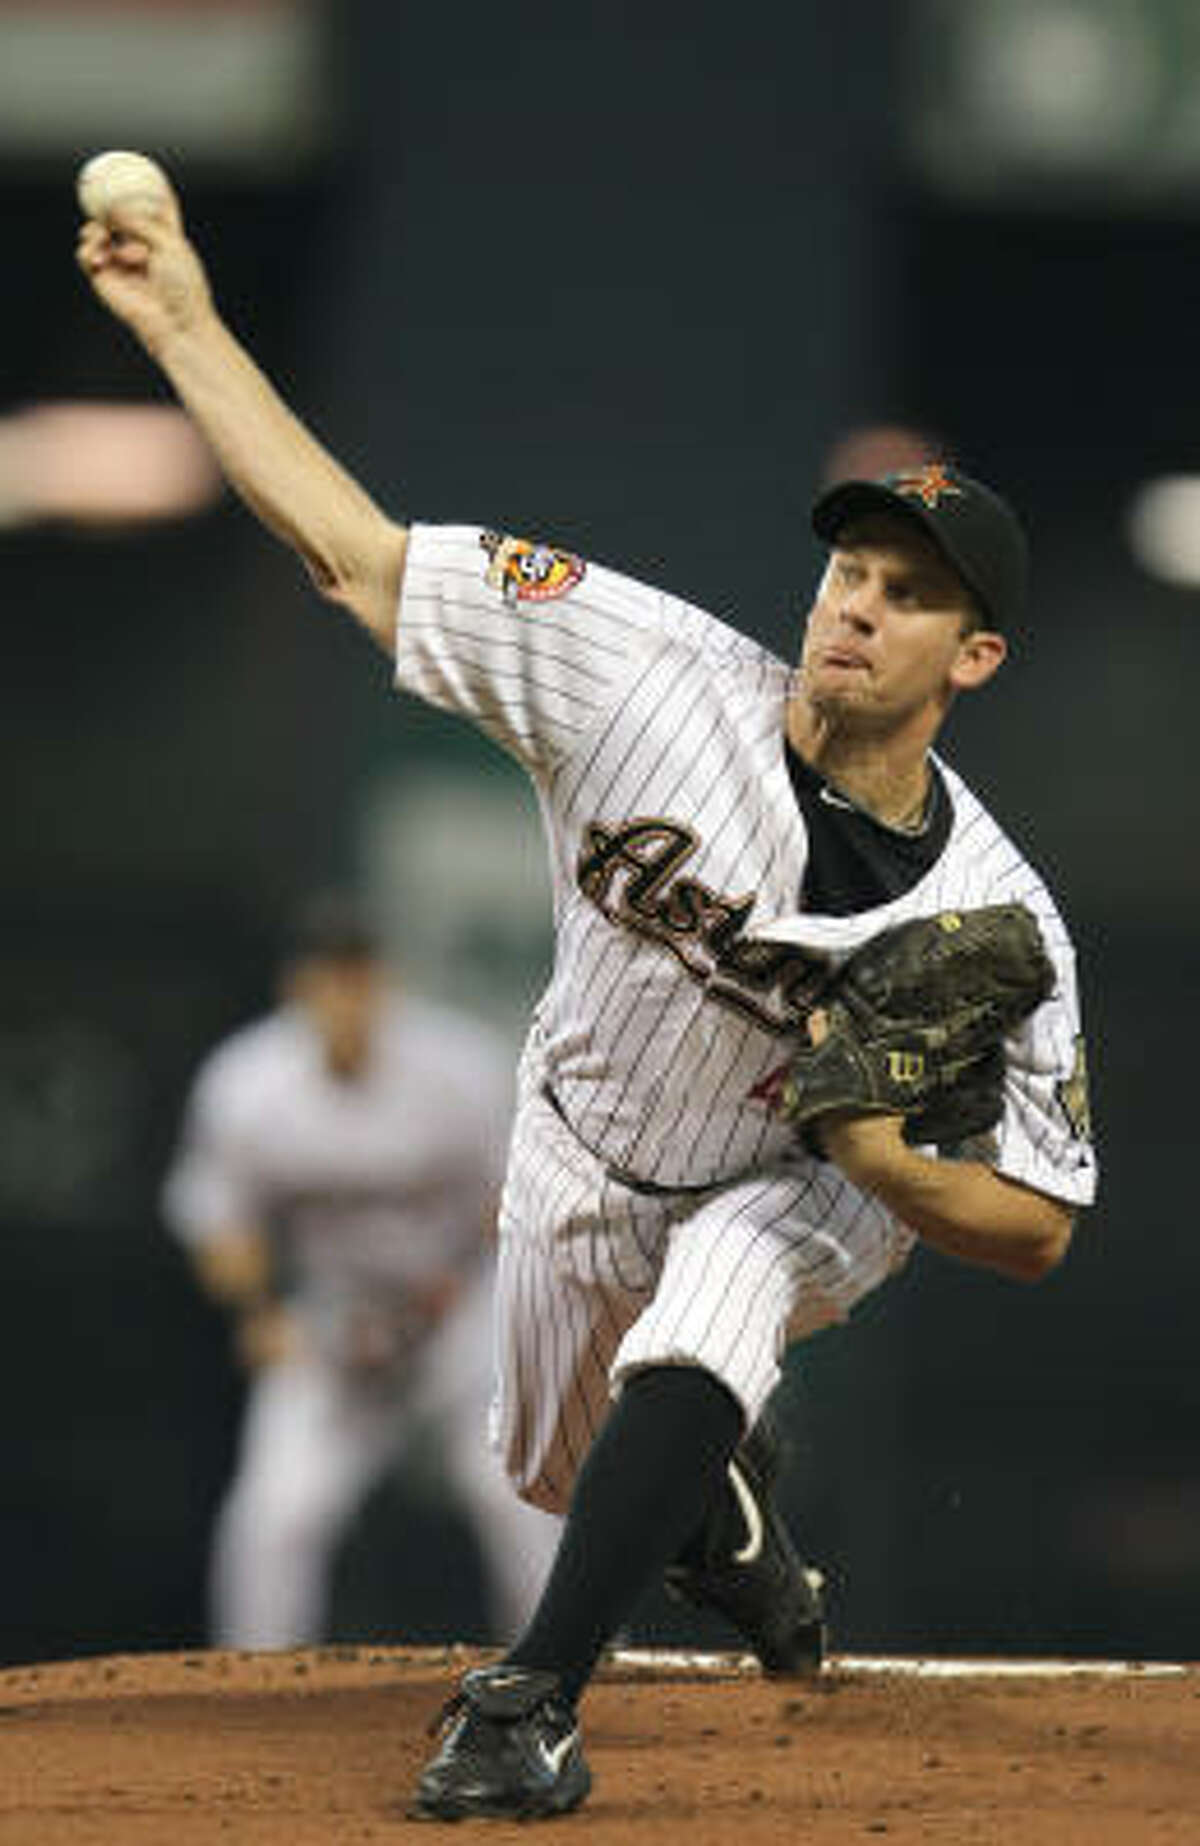 Roy Oswalt announced that he wanted out six weeks ago, but a deal has yet to be made.